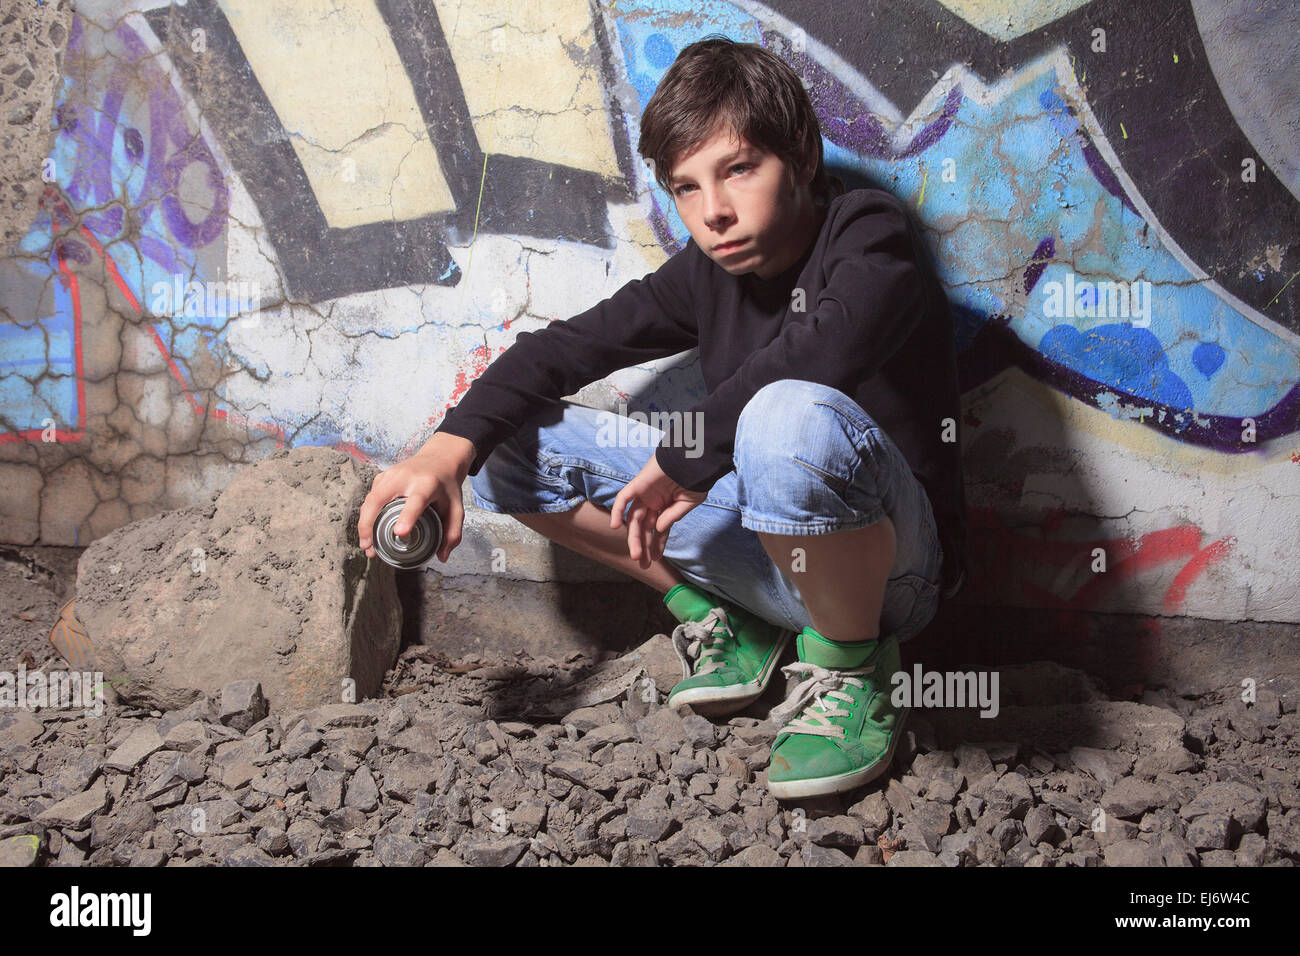 Teen made some graffiti on the wall of a tunnel - Stock Image